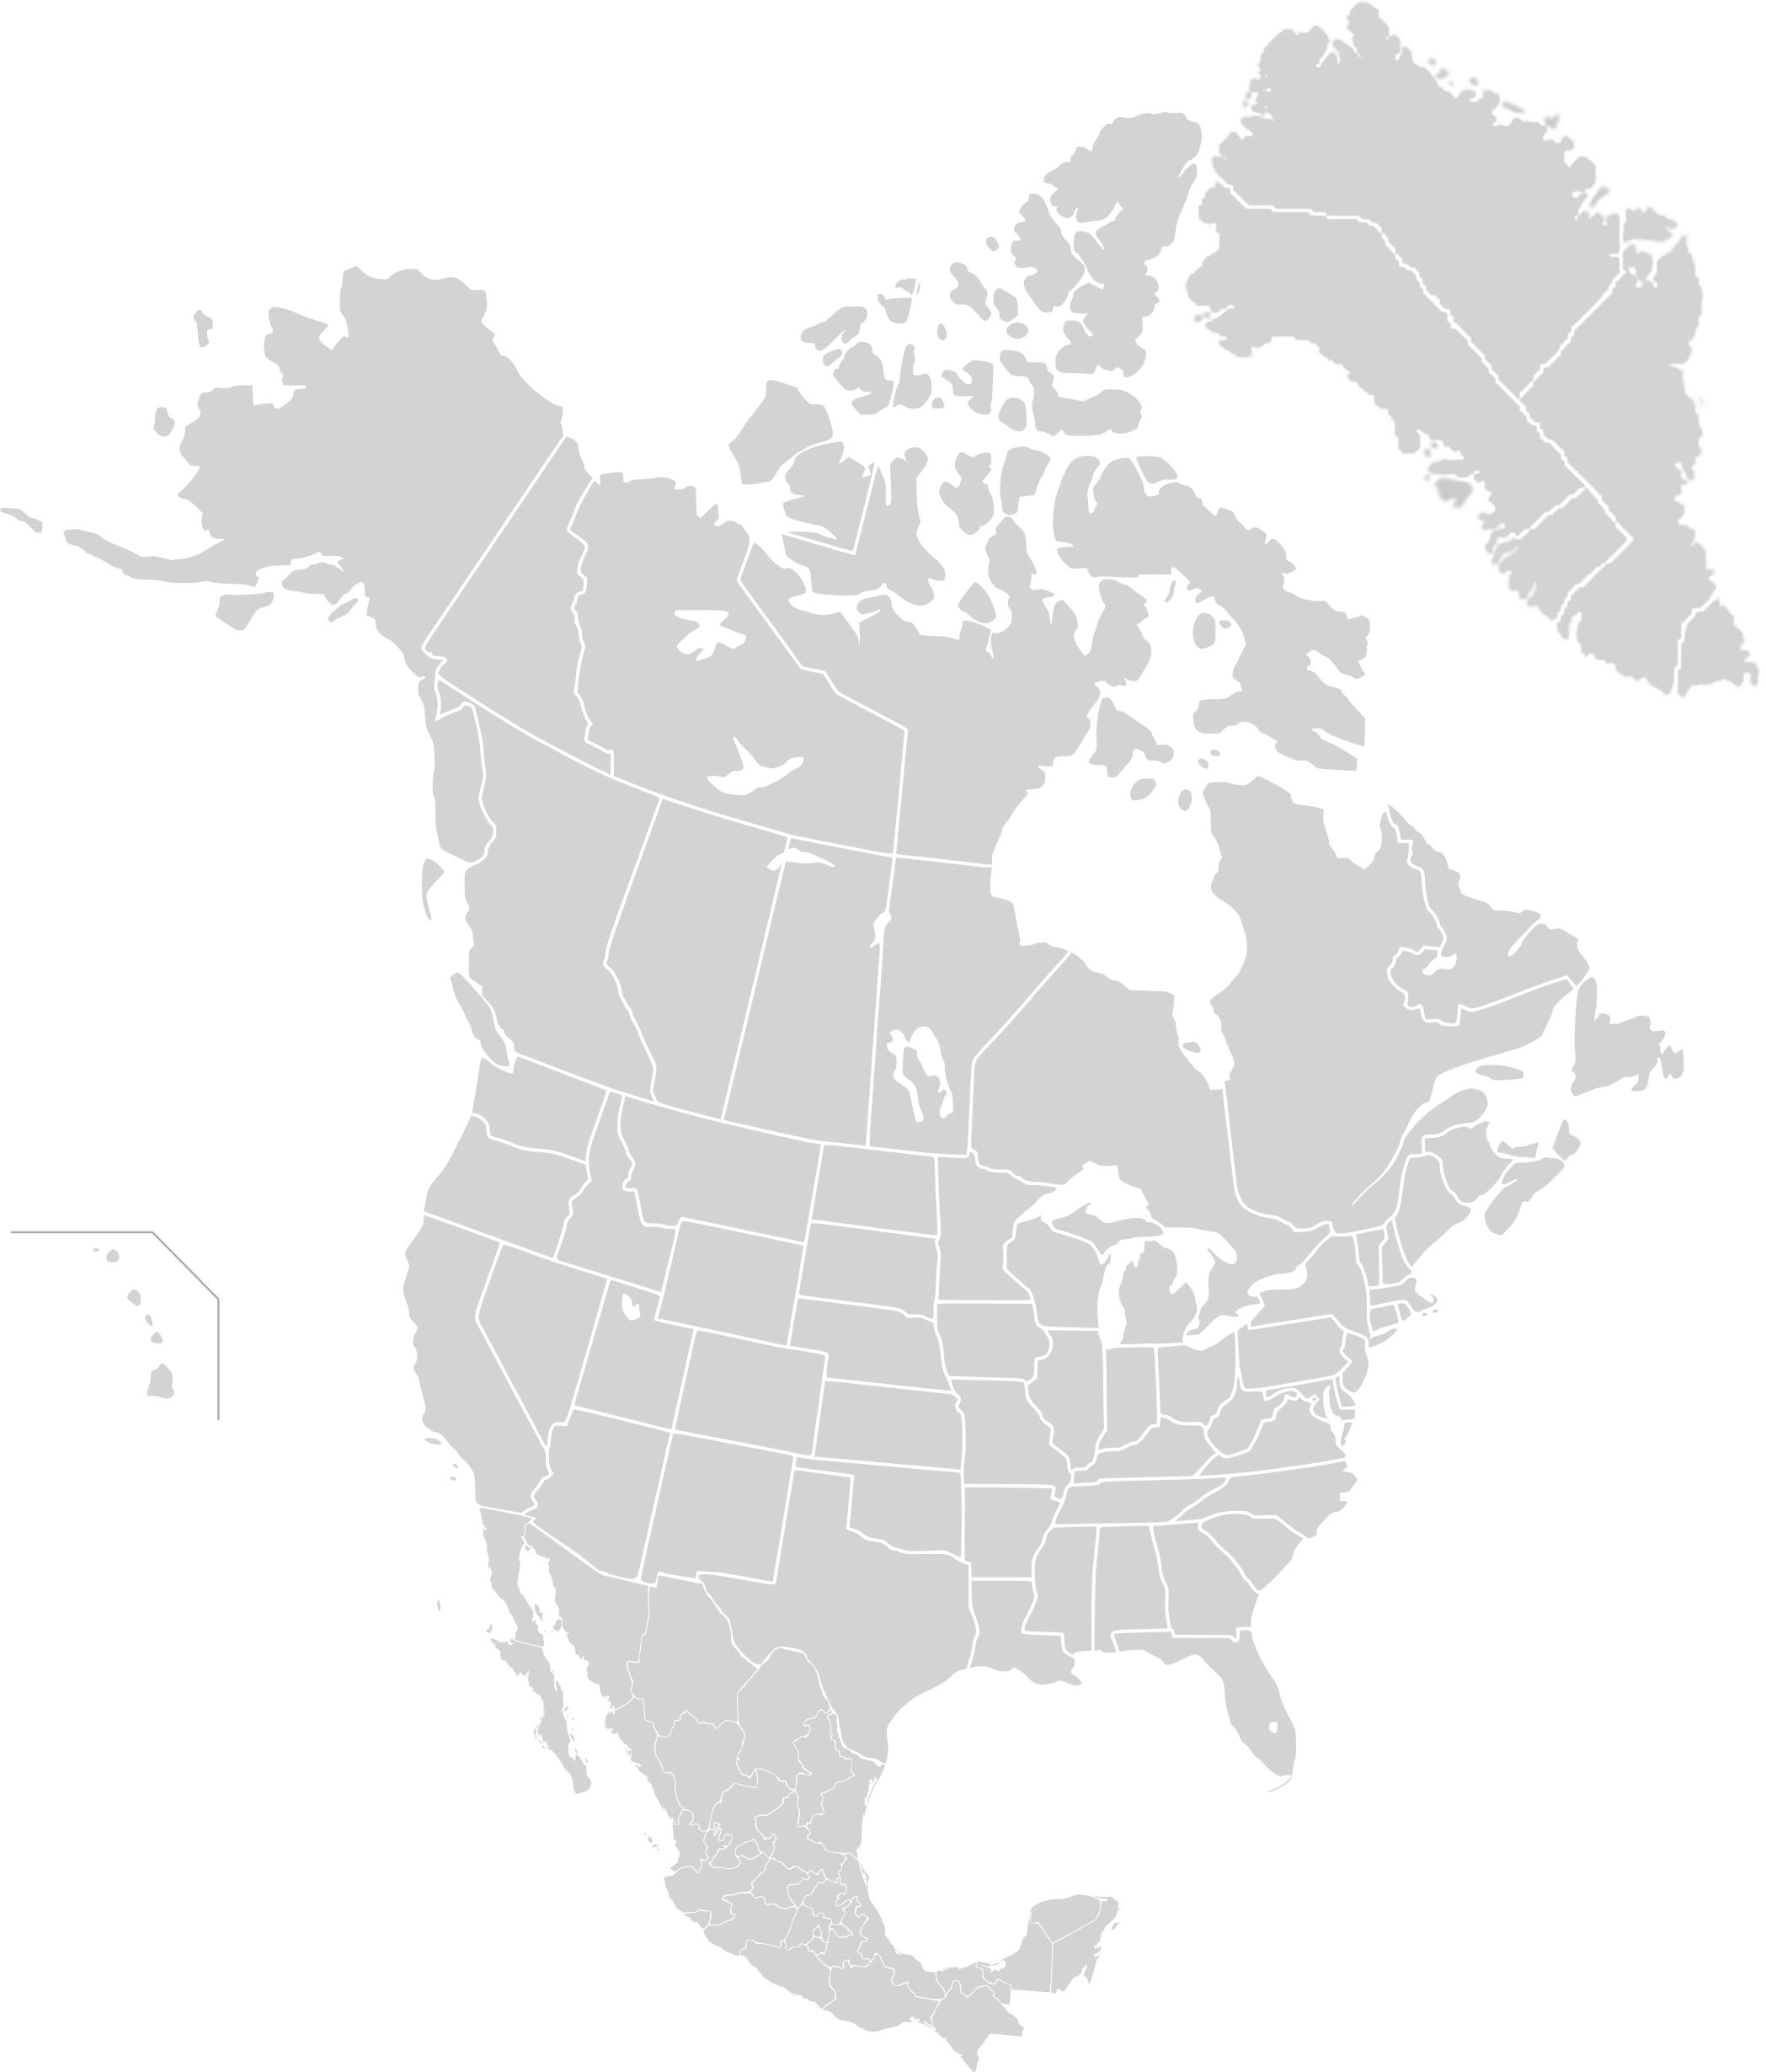 North america map png. File subnational division wikimedia